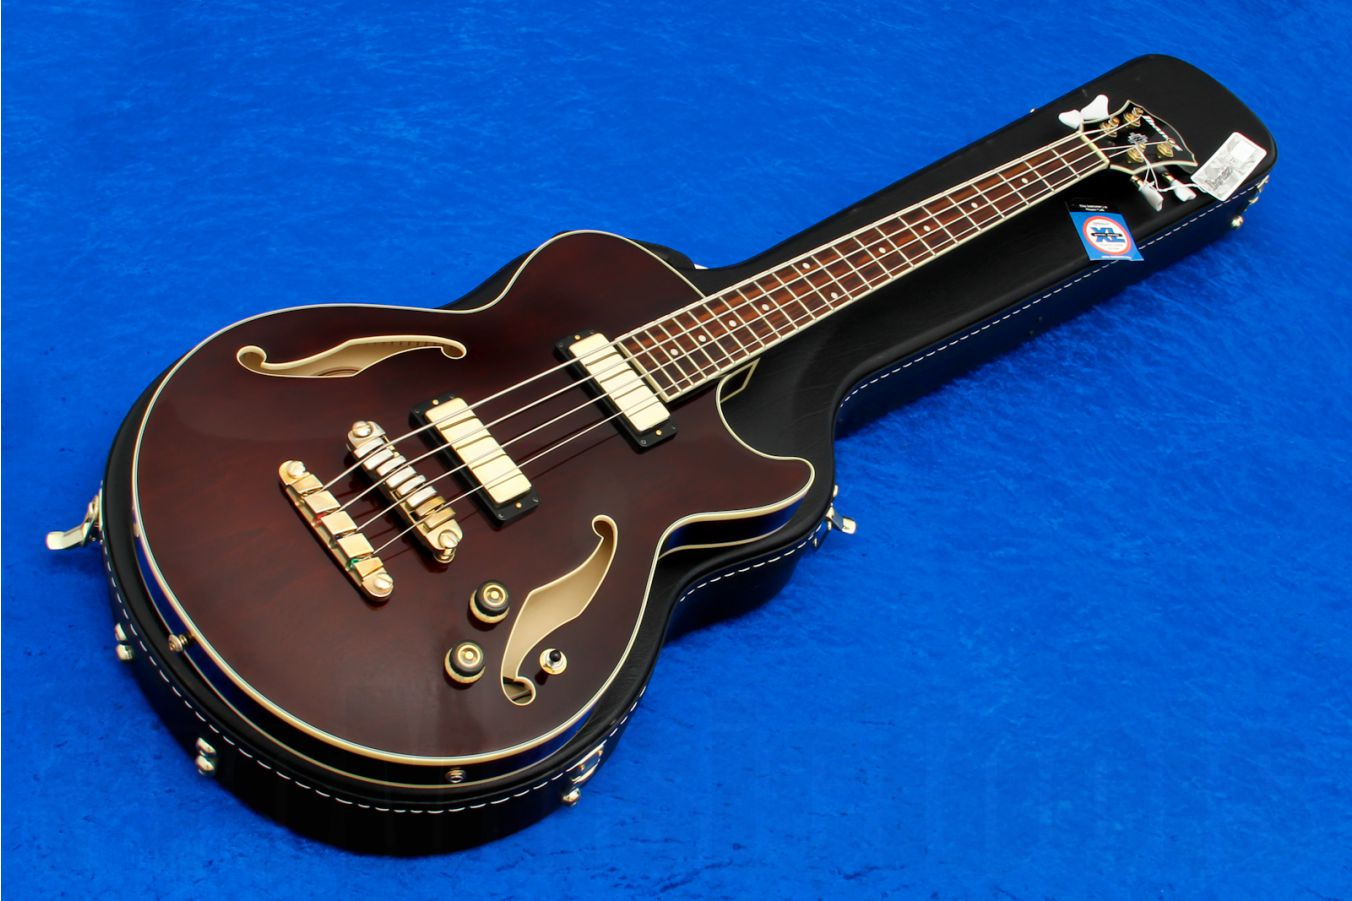 Ibanez AGB200 TBR - Transparent Brown - demo